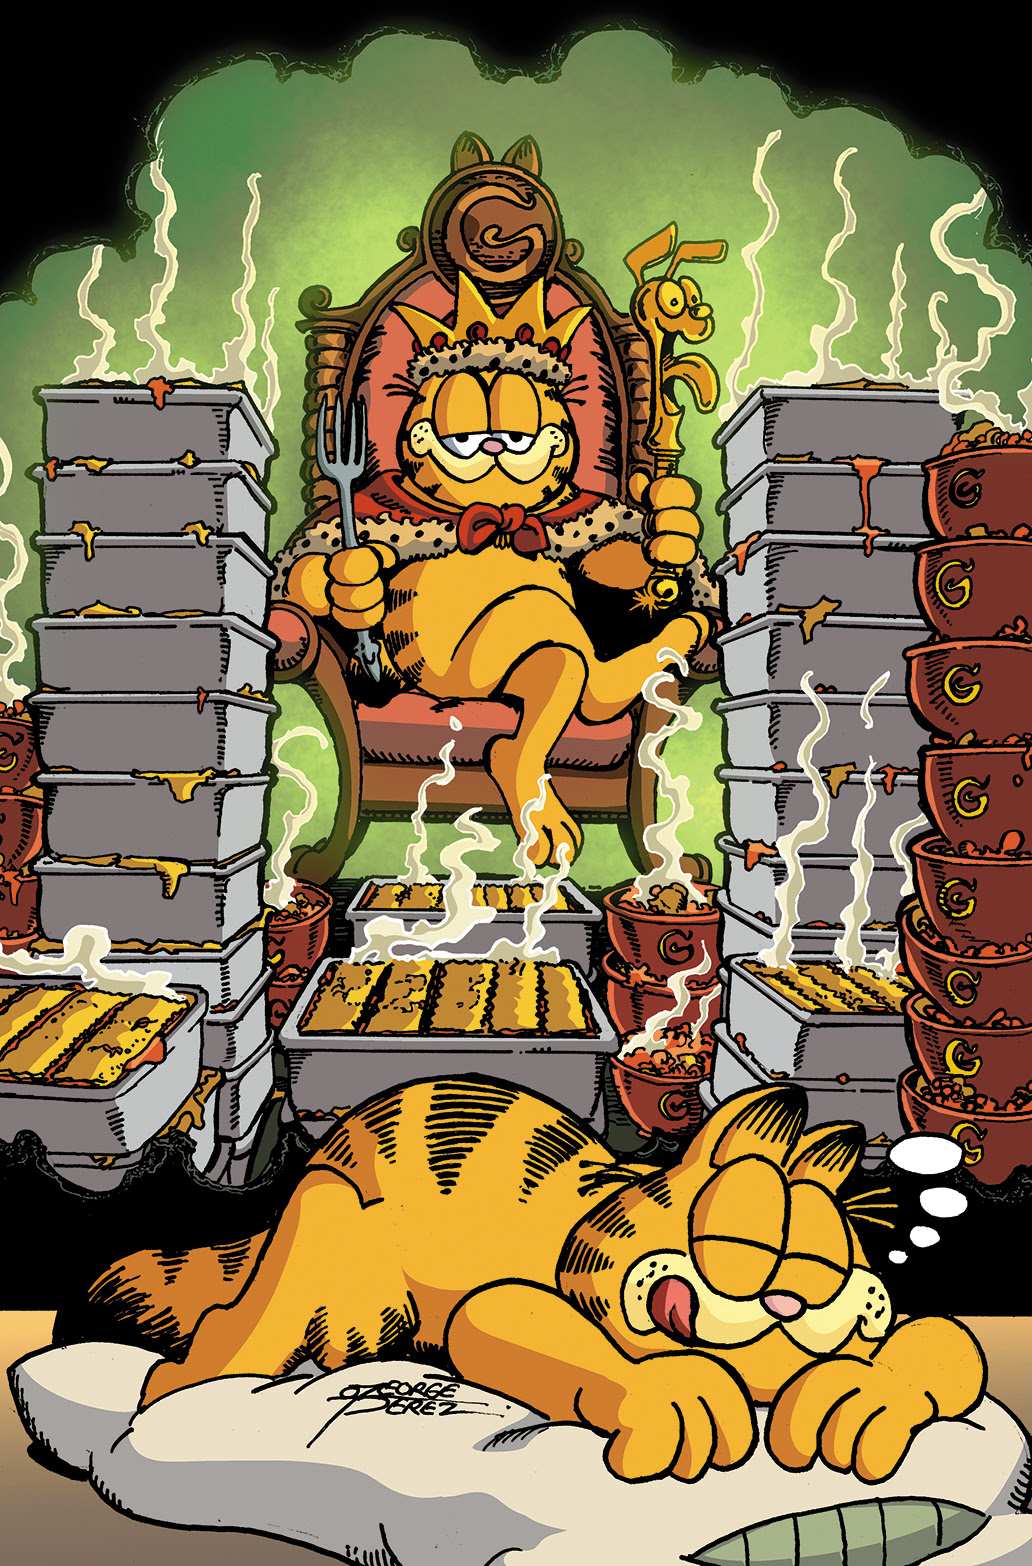 GARFIELD #25 Cover B by George Pérez